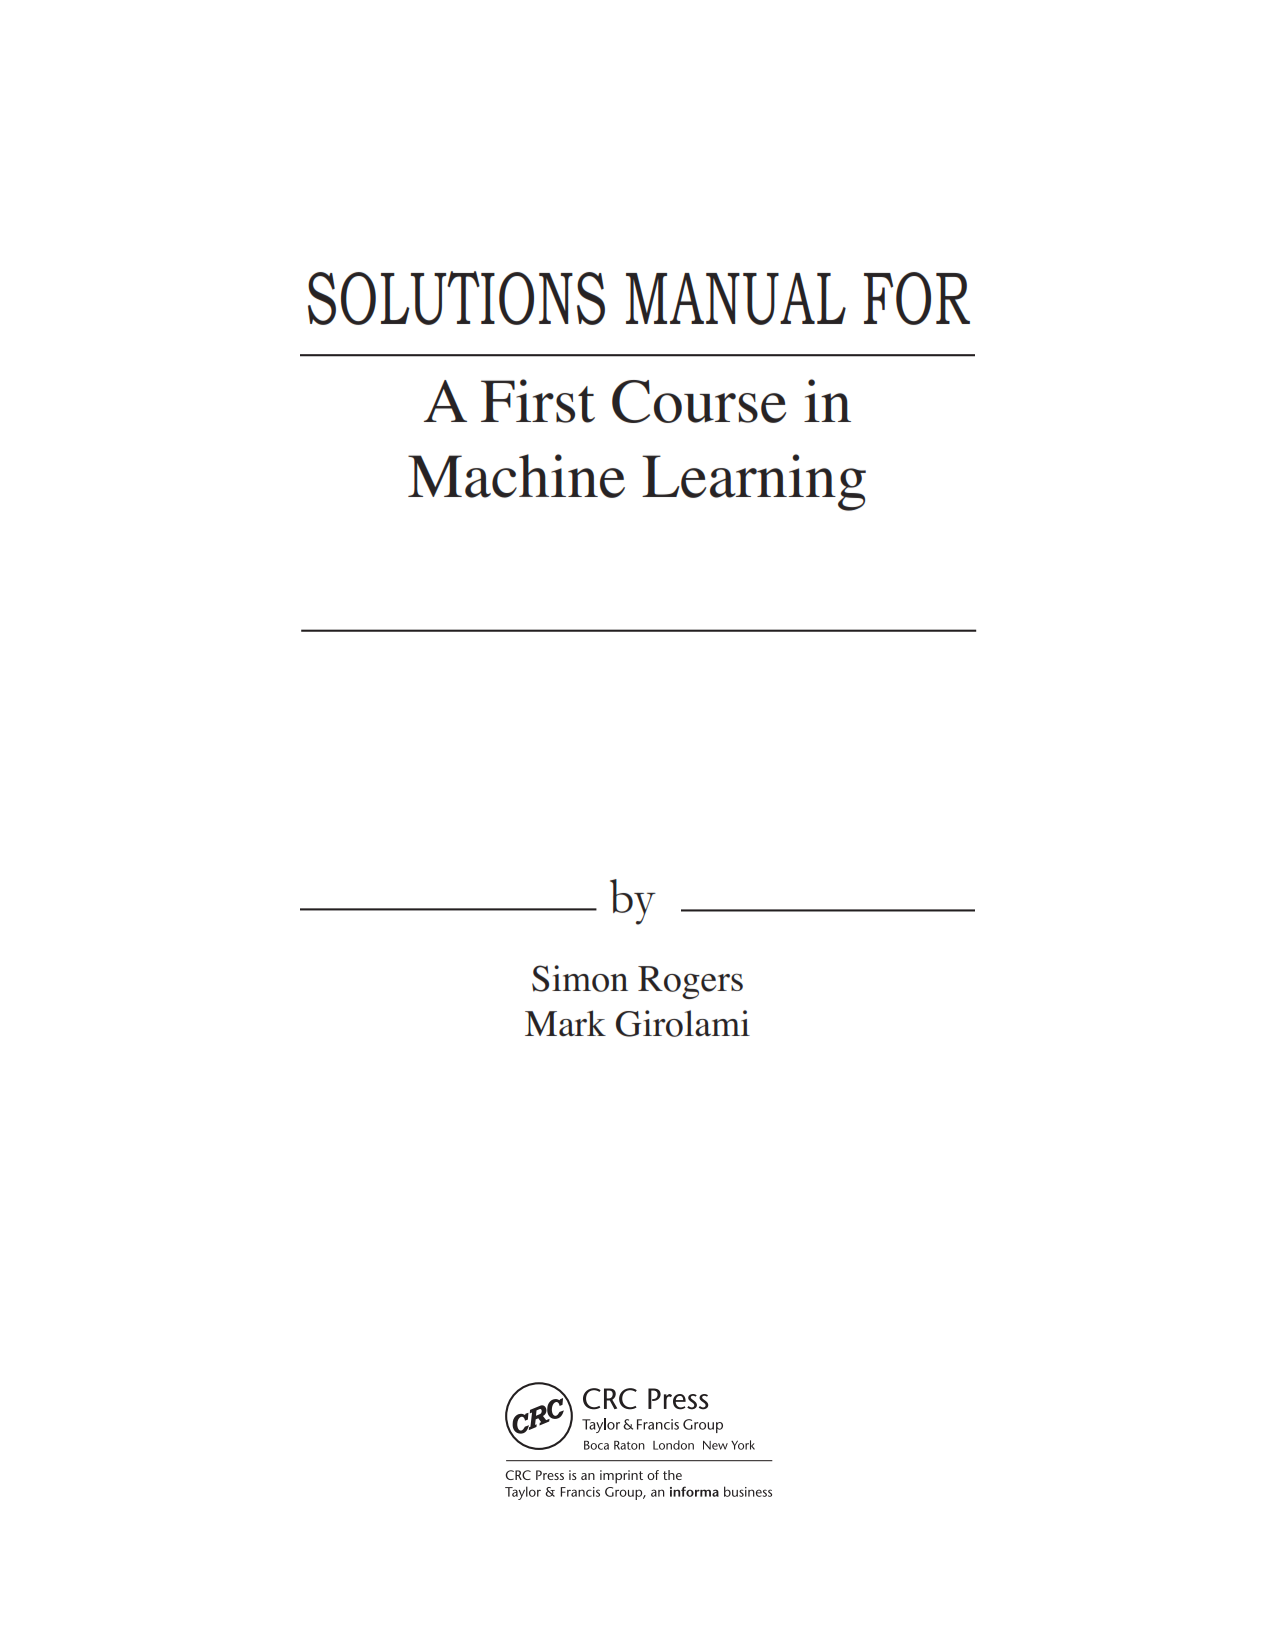 Solution Manual and answer of a first course in machine learning 1st edition written by Simon Rogers Mark Girolami eBook pdf